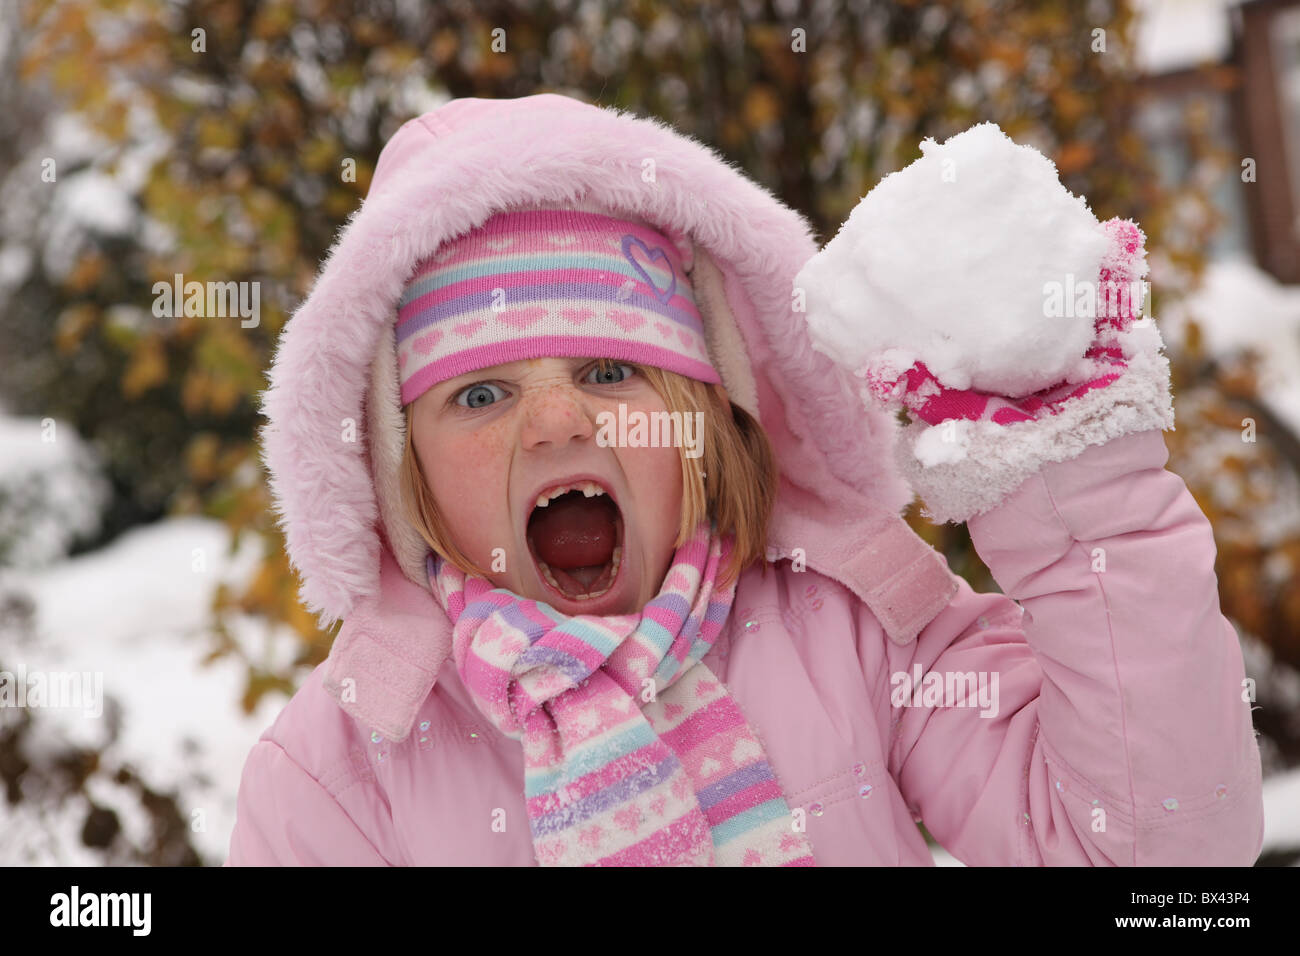 A young cheeky girl ready to throw a snowball - Stock Image